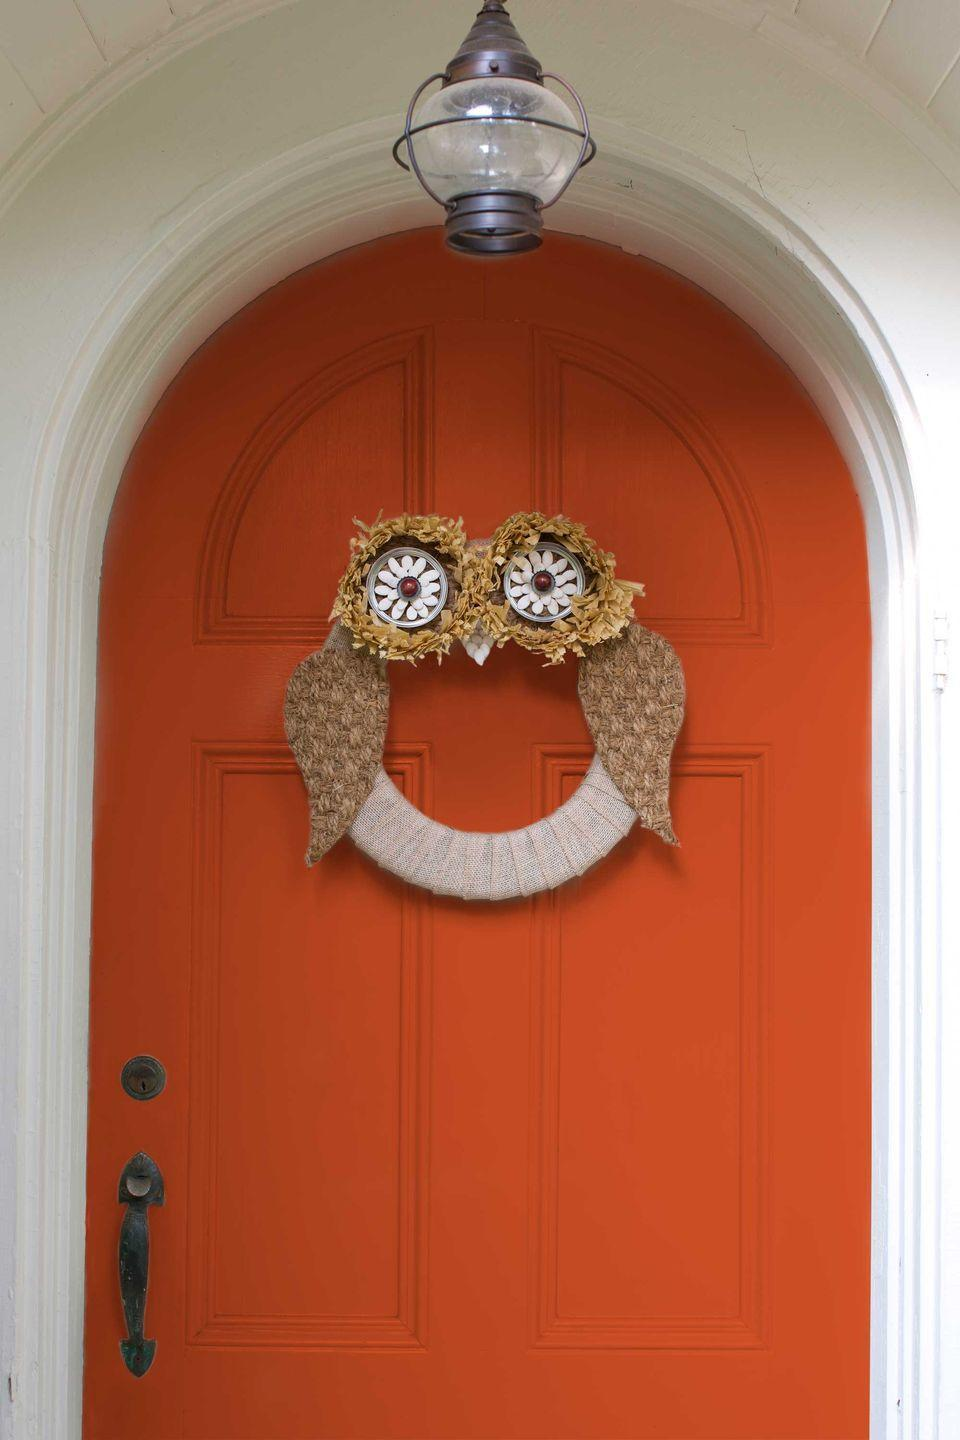 """<p>Fashion this owl wreath for an adorable fall entrance. Your neighbors will think it's a hoot! Wrap burlap ribbon around a 12"""" Styrofoam form. For the eyes, use utility scissors to cut a 5"""" circle from a sisal doormat. Trim a 2"""" strip from the edge of a raffia table skirt and hot-glue along the outer edge.</p><p>Next, hot-glue the outer ring of a 41/2""""-inch Mason jar lid inside the raffia, securing it to the sisal circle. Hot-glue a metal bottle cap at the center of the ring and encircle with dried pumpkin seeds. Hot-glue a red wood bead inside bottle cap. Repeat for second eye. For the wings, cut two 8""""H x 5""""W teardrop-shaped pieces from the doormat. For the beak, cut a 3"""" triangle from the mat; cover with dried pumpkin seeds. Attach the beak, then the eyes and wings, with hot-glue.</p>"""